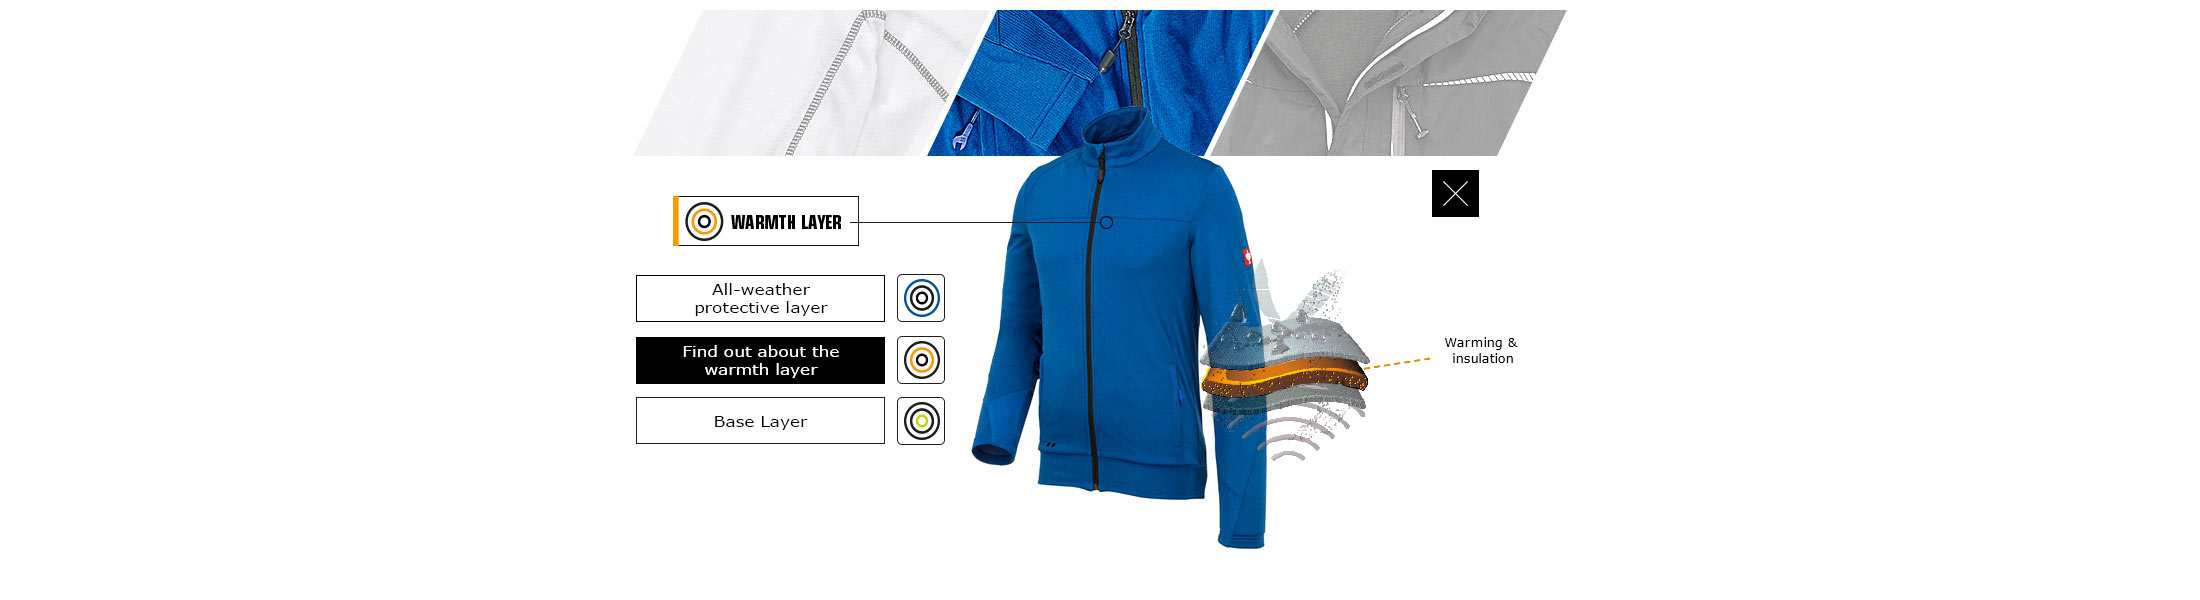 engelbert strauss warmth layer workwear prevents the body becoming cold